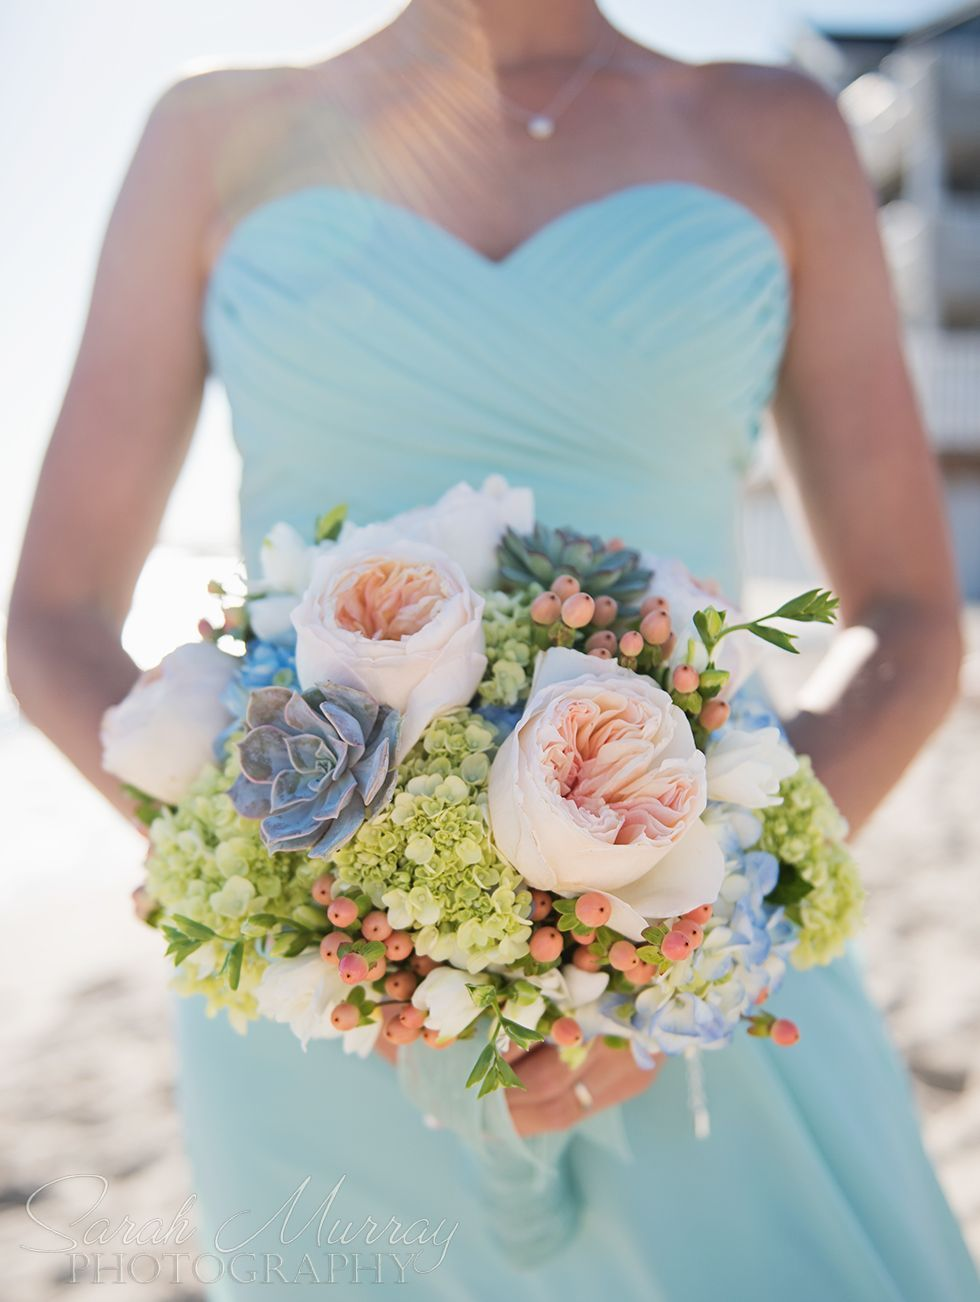 Peach roses blue and green hydrangeaus succulents and more accent